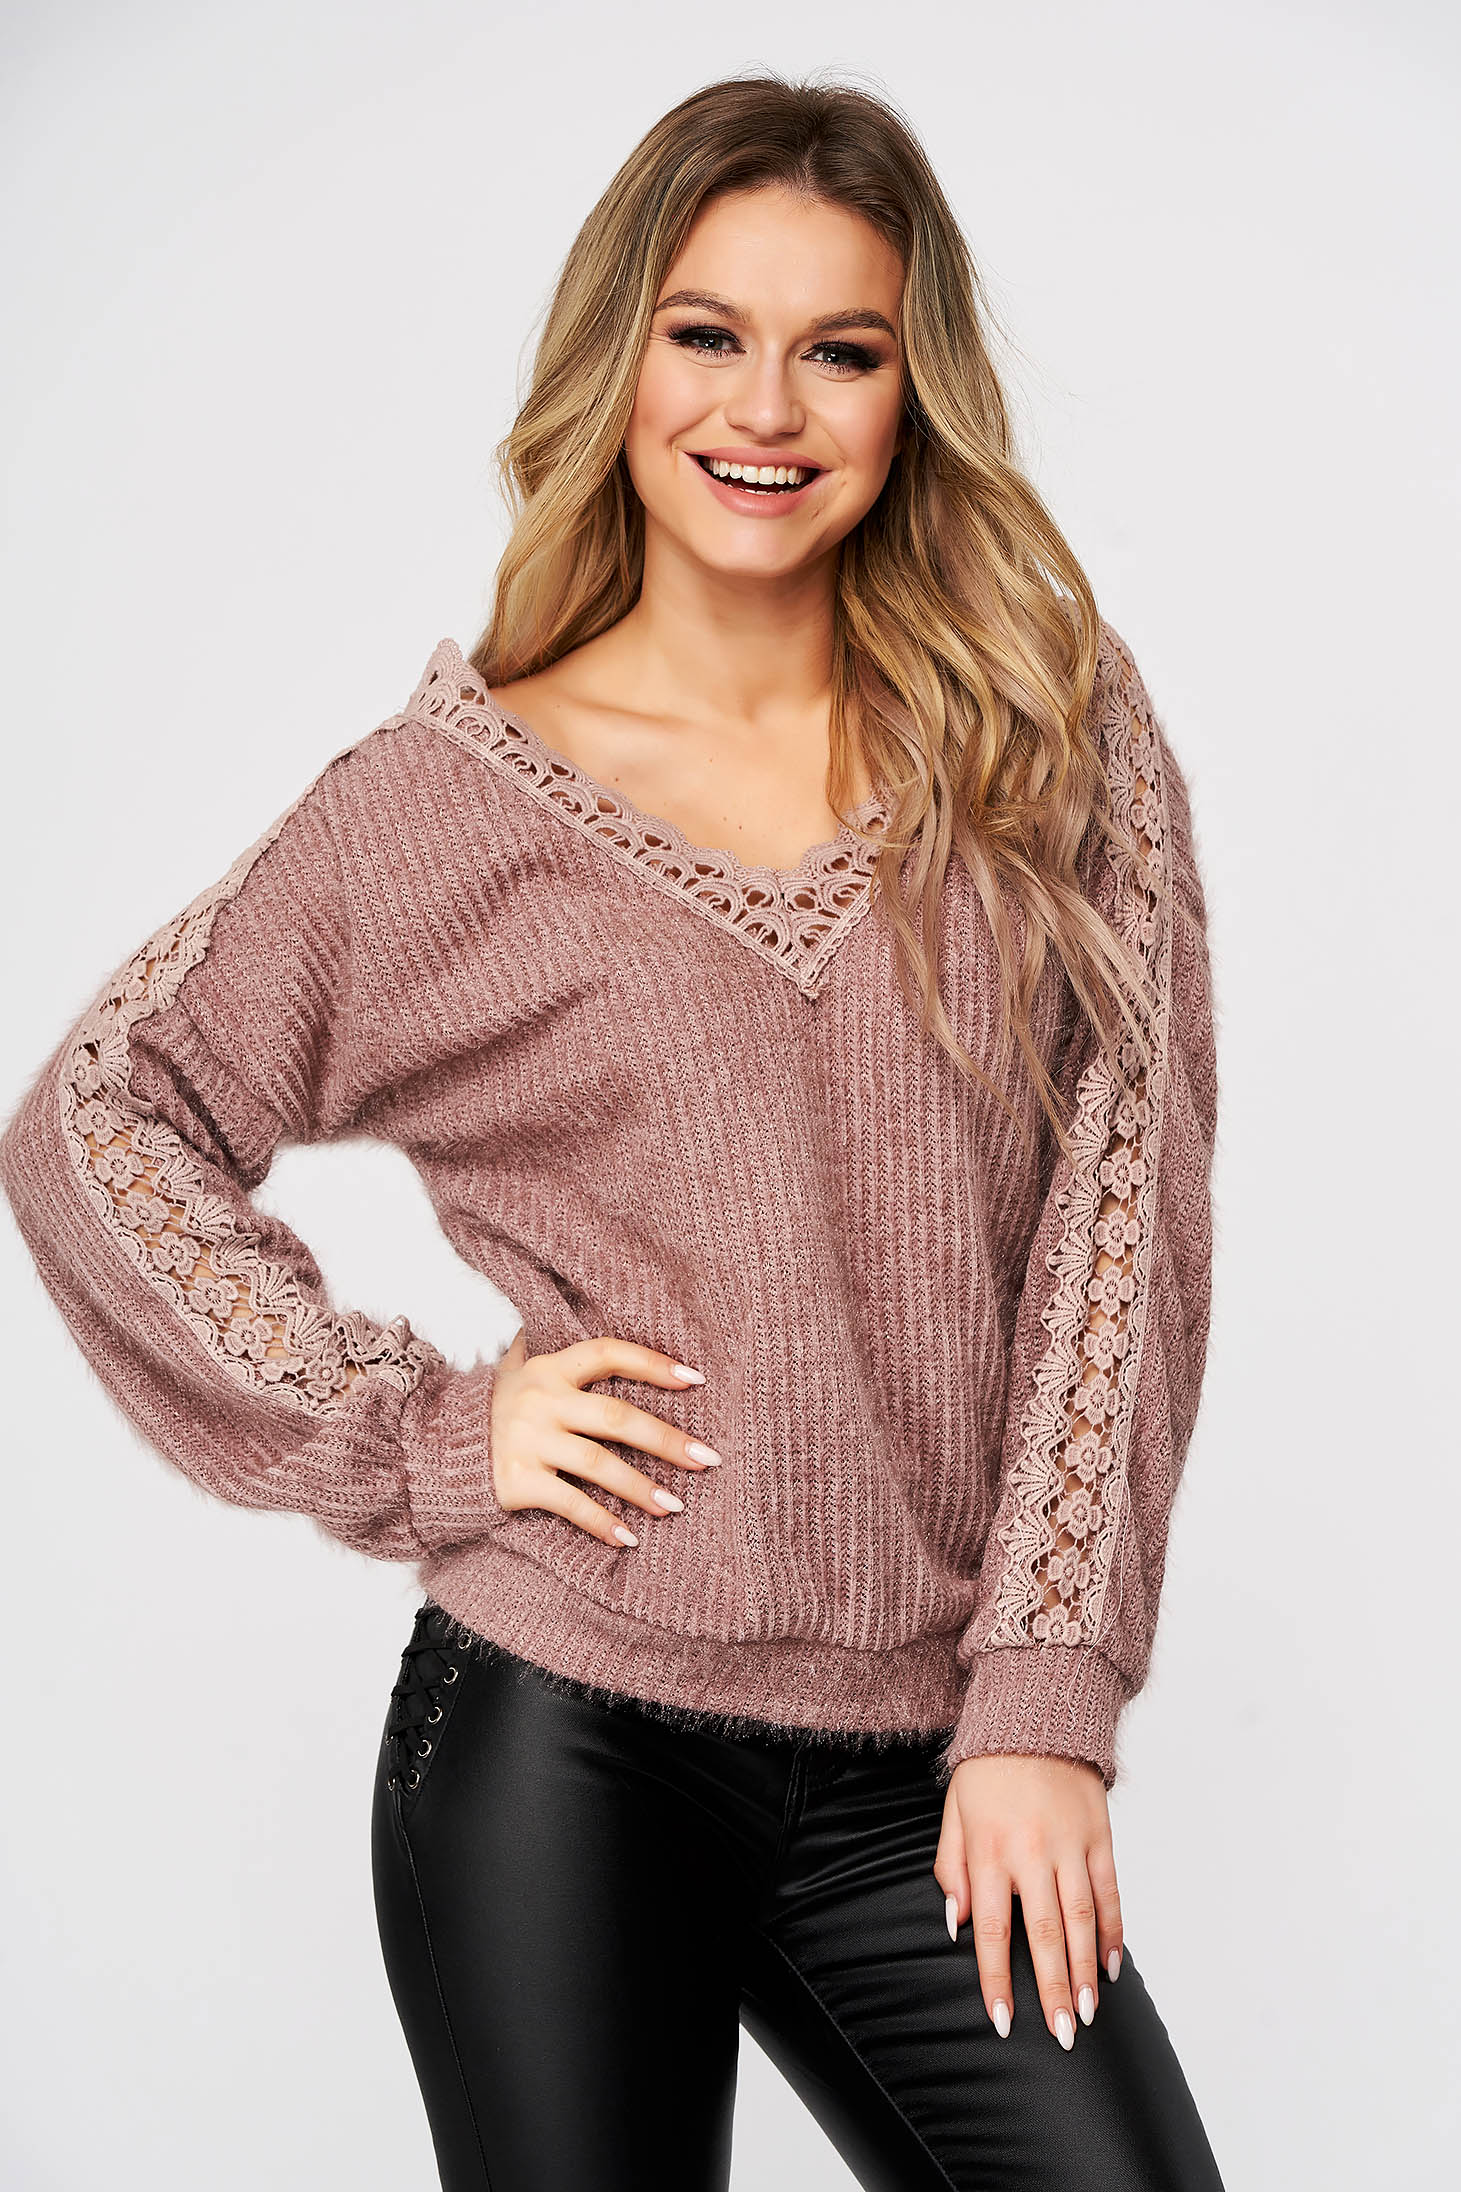 Lightpink sweater casual knitted fabric with lace details flared